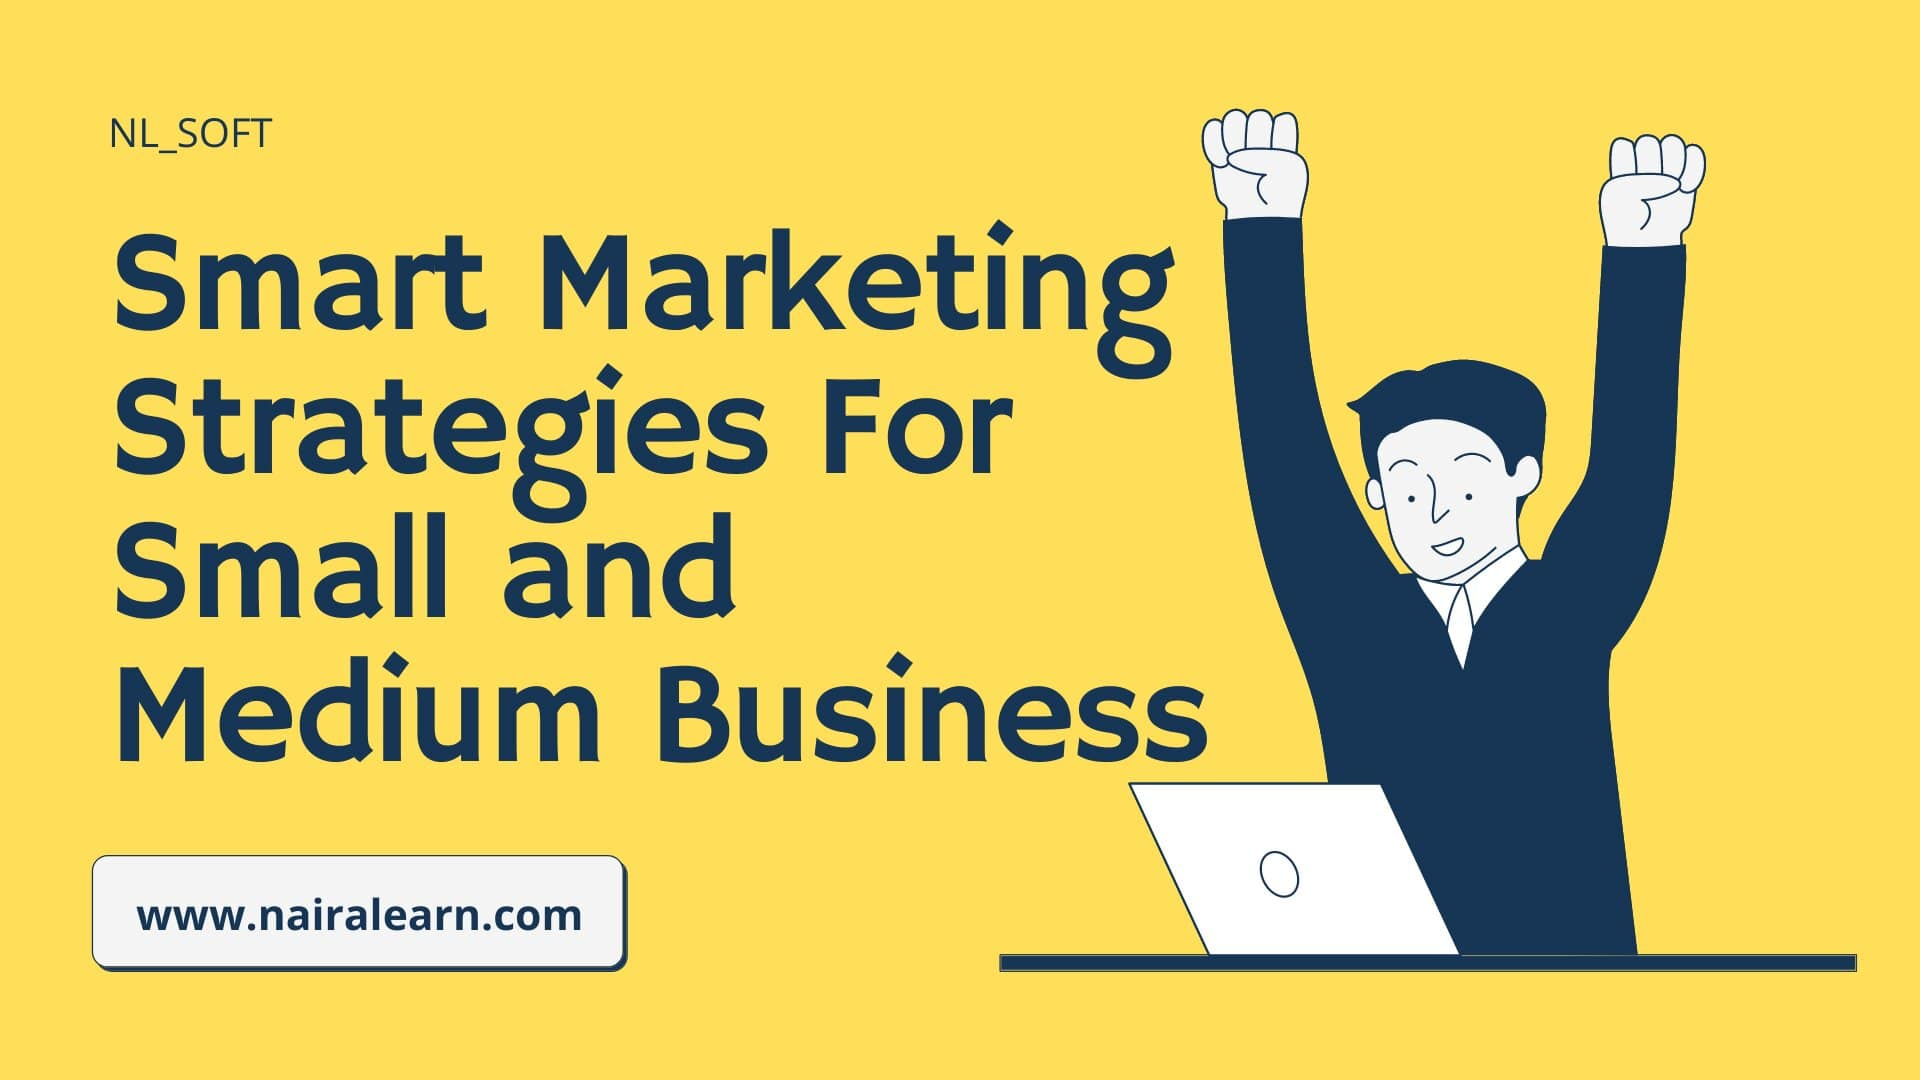 Smart Marketing Strategies For Small and Medium Business